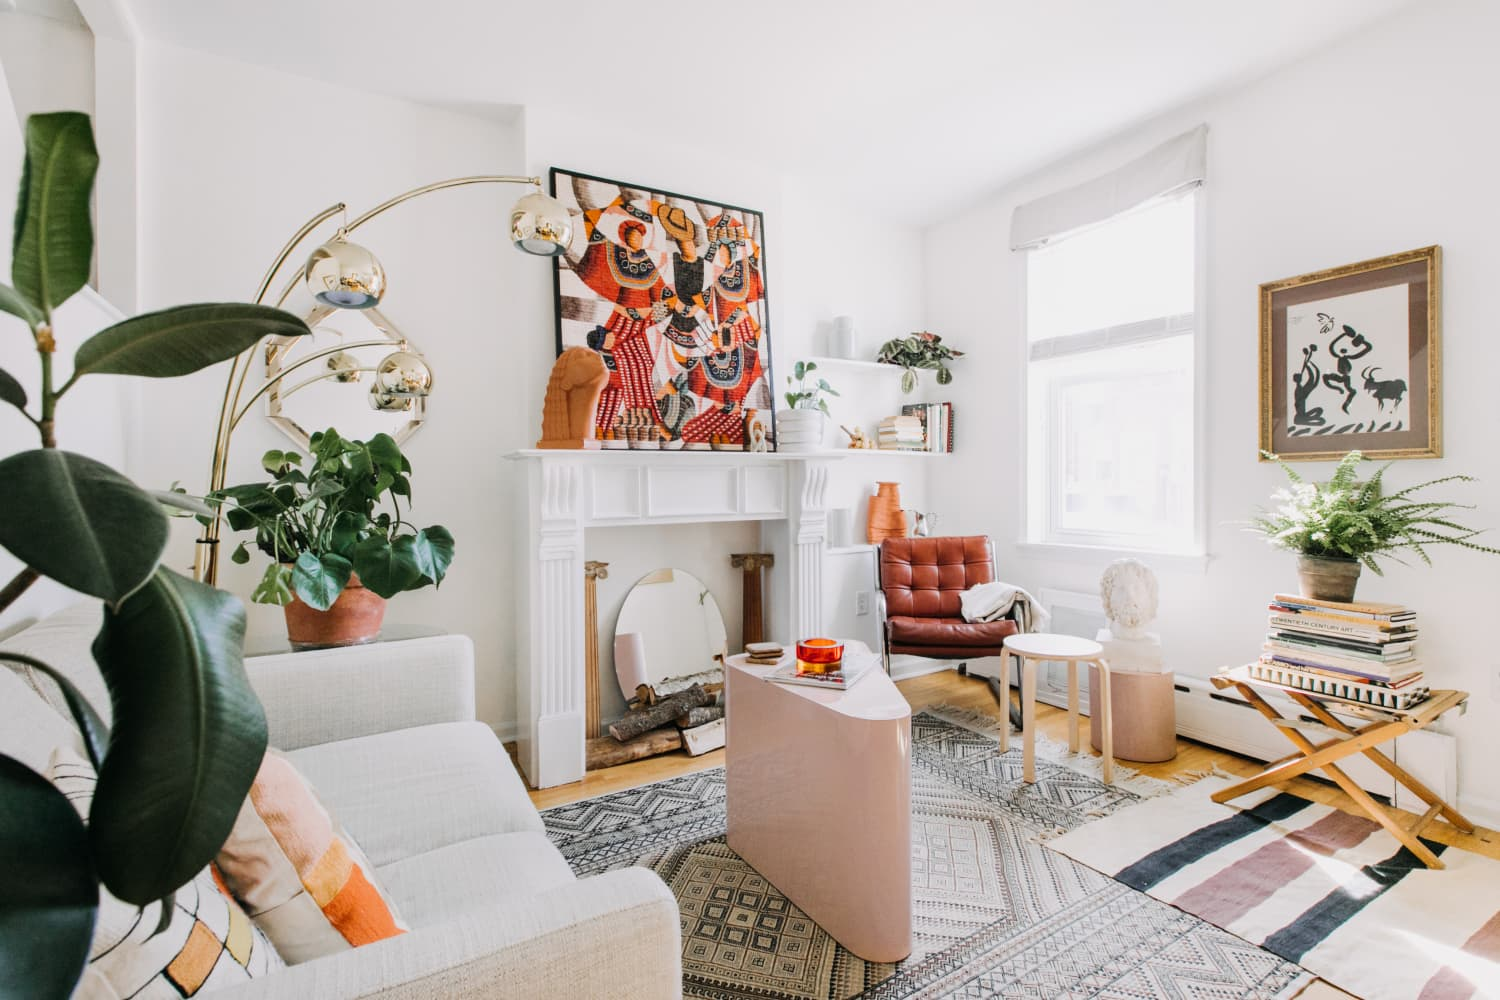 Should You Save or Splurge on Your Living Room?